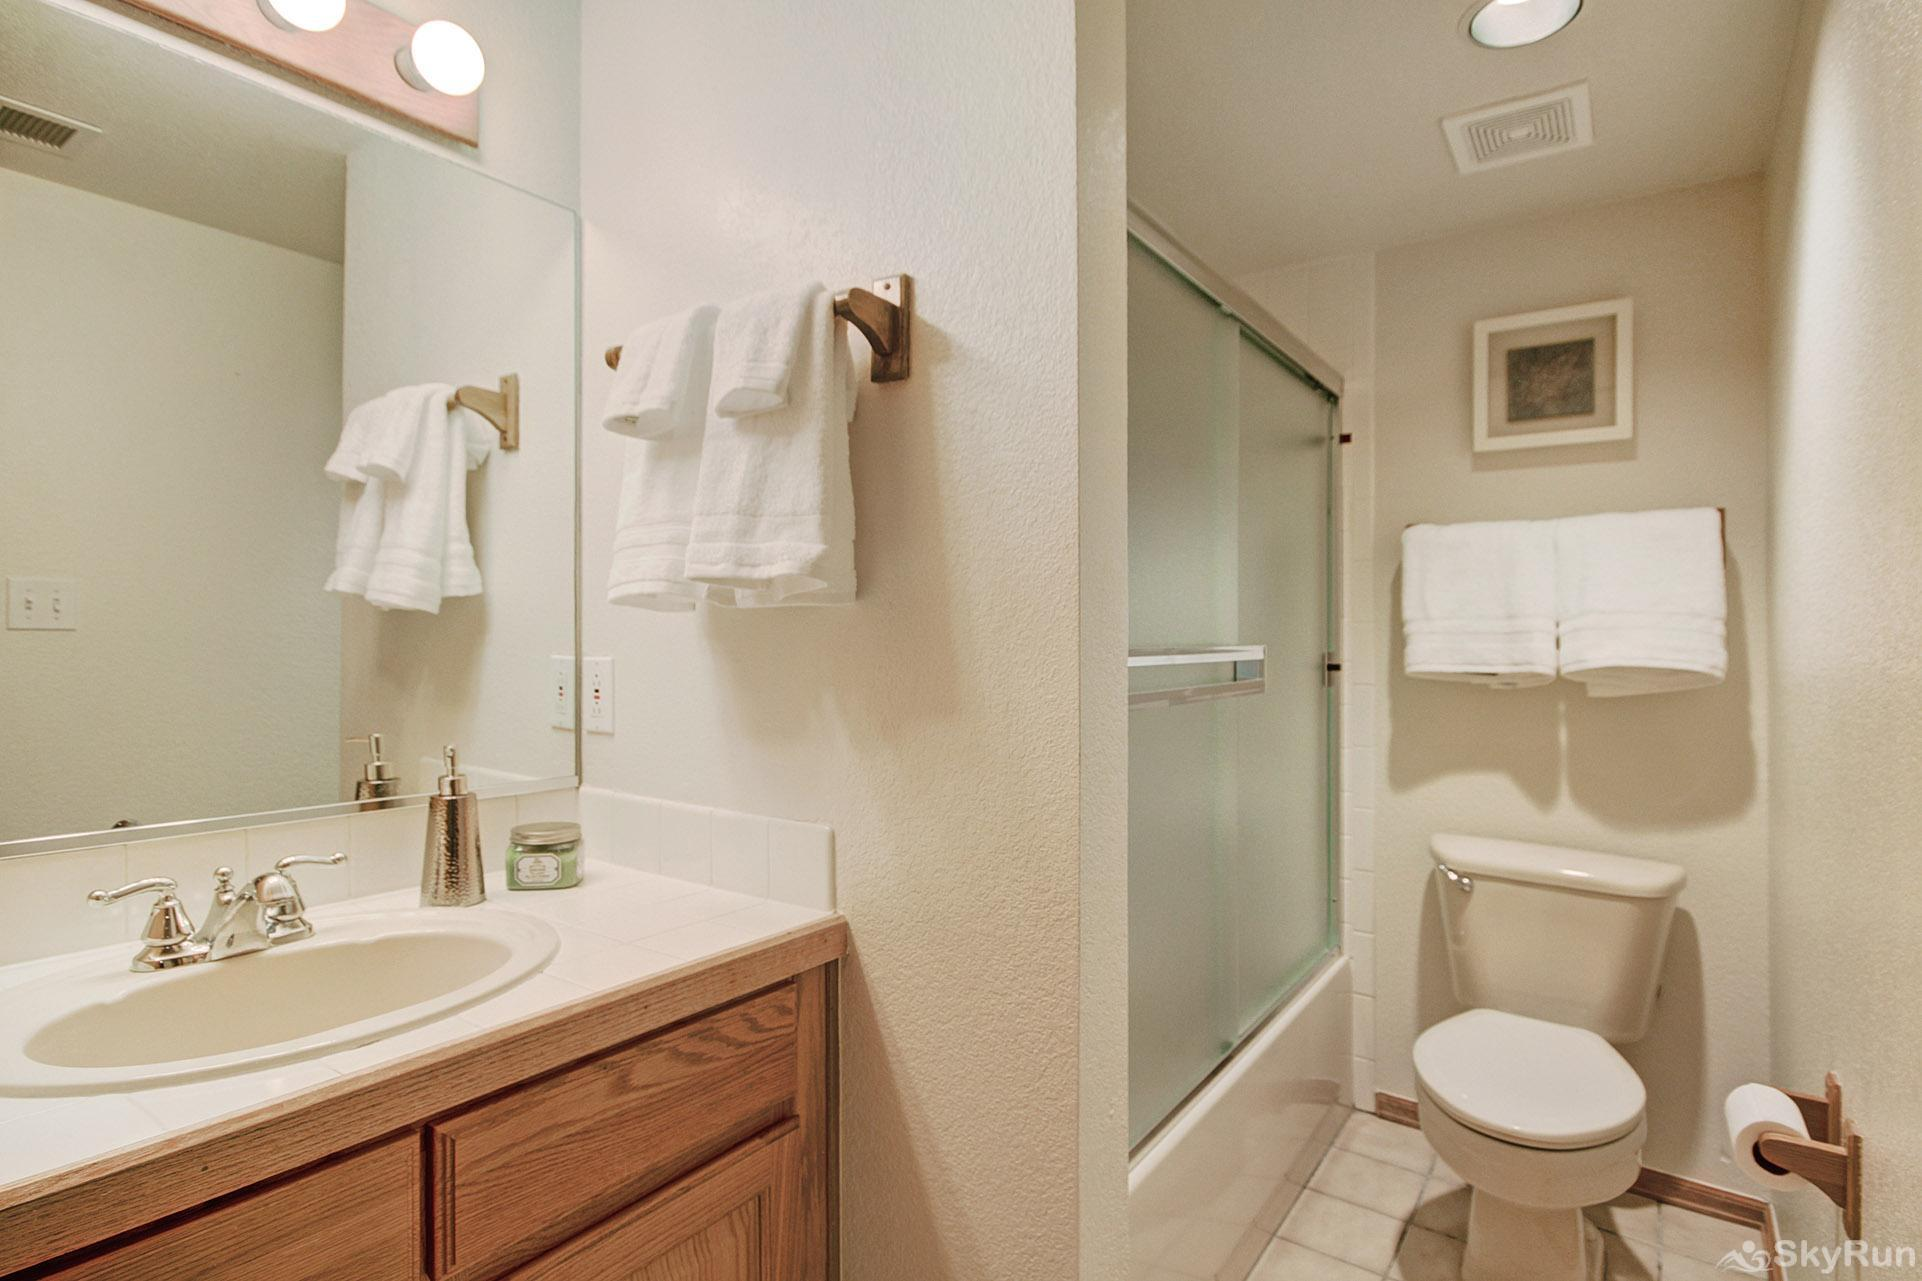 Village Point 303 2 master bedroom suites include private bathrooms